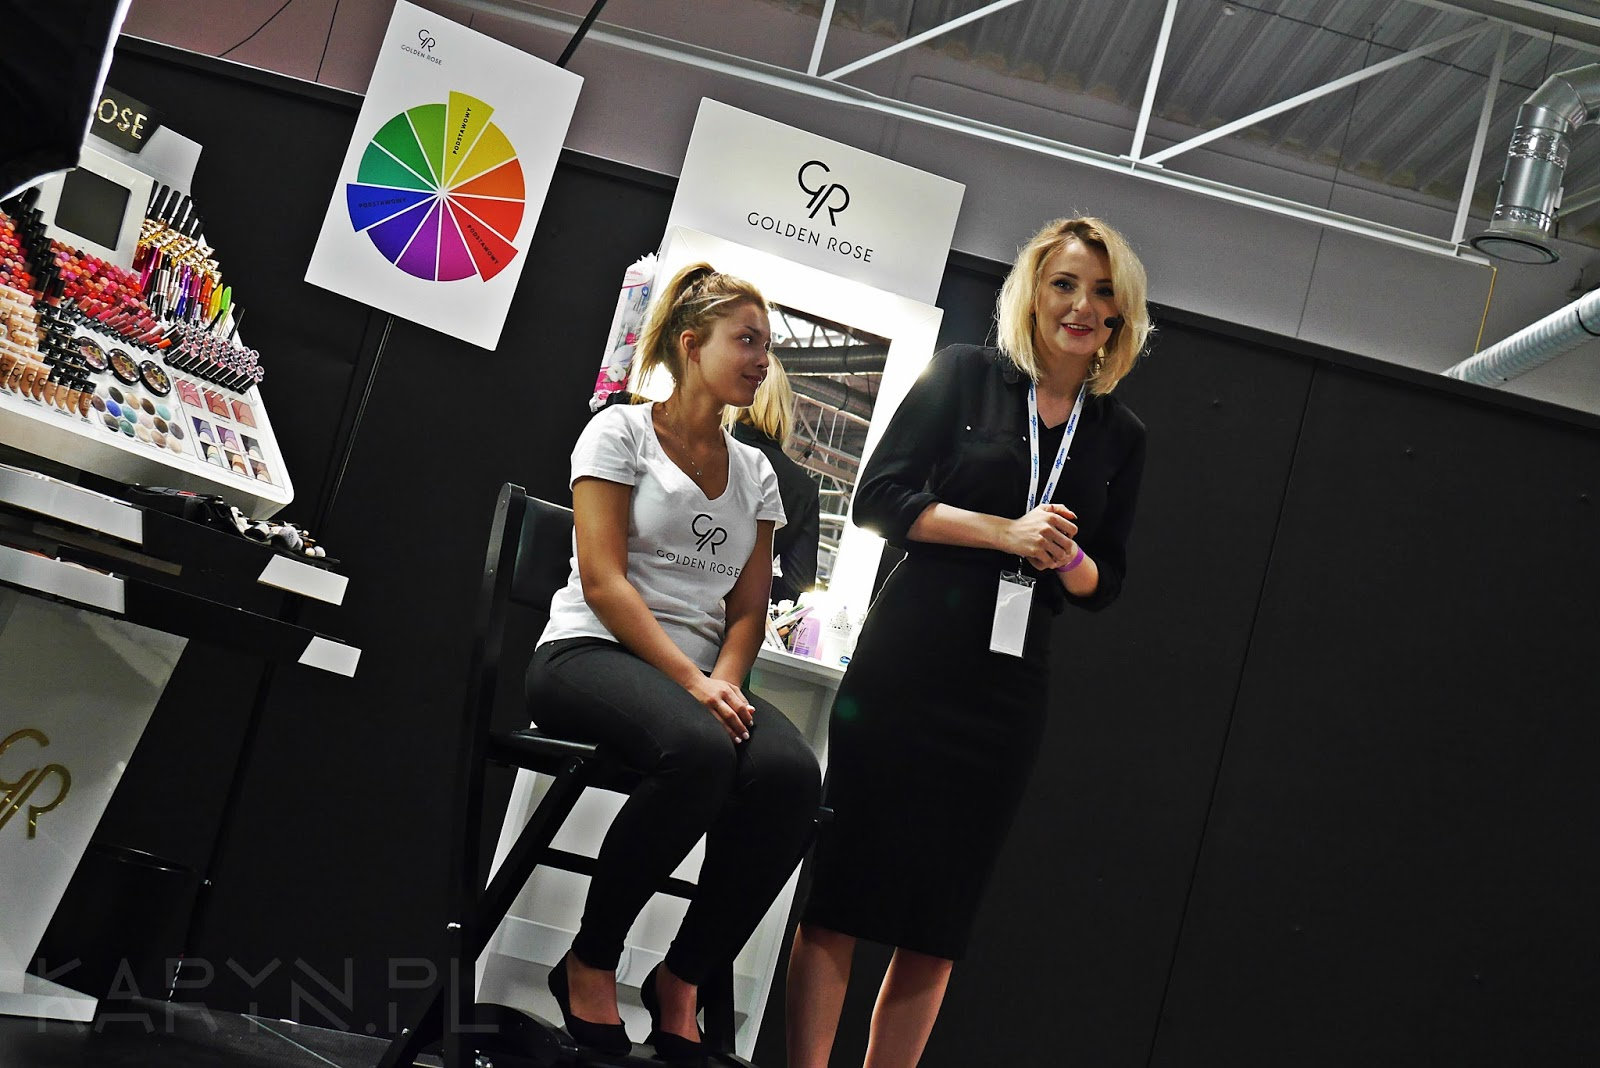 konferencja_meetbeauty_2017_beauty_days_karyn_blog_ptakexpo_2205176